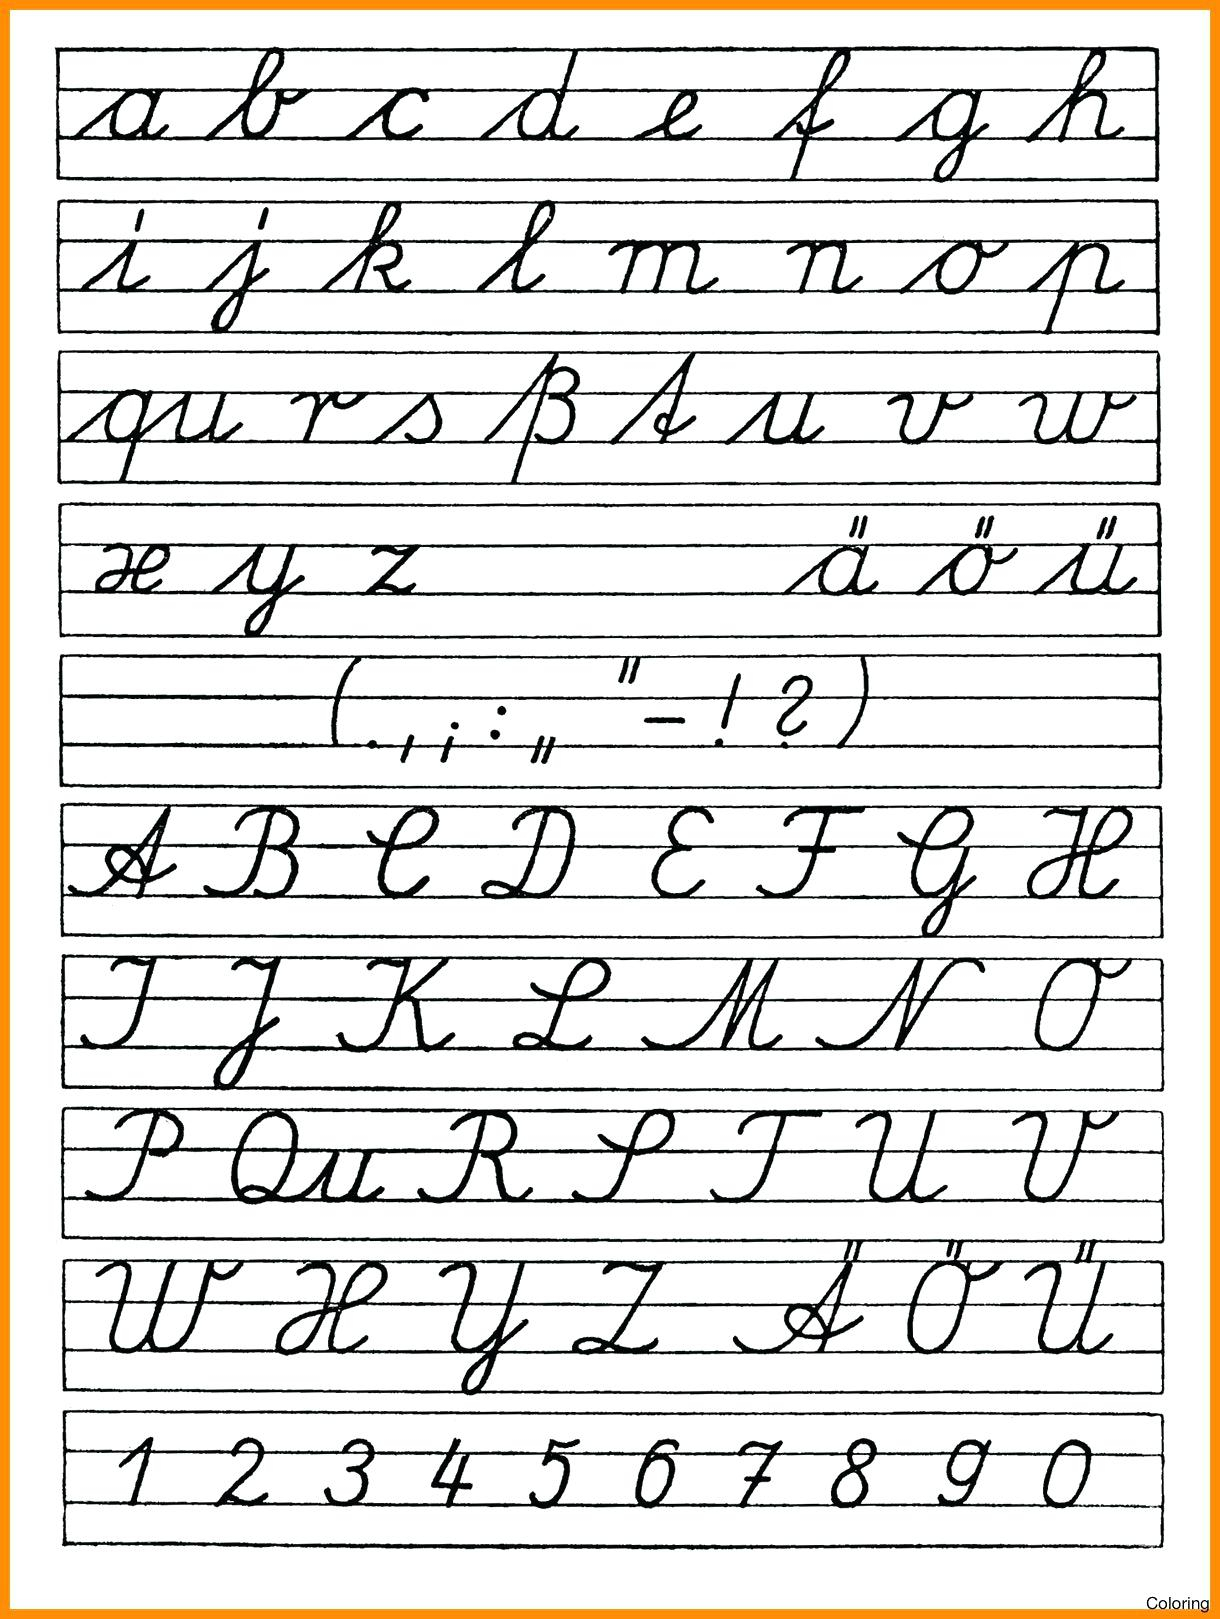 Coloring Book : Coloring Book Free Printable Cursives Chart intended for Tracing Cursive Letters Worksheets Free